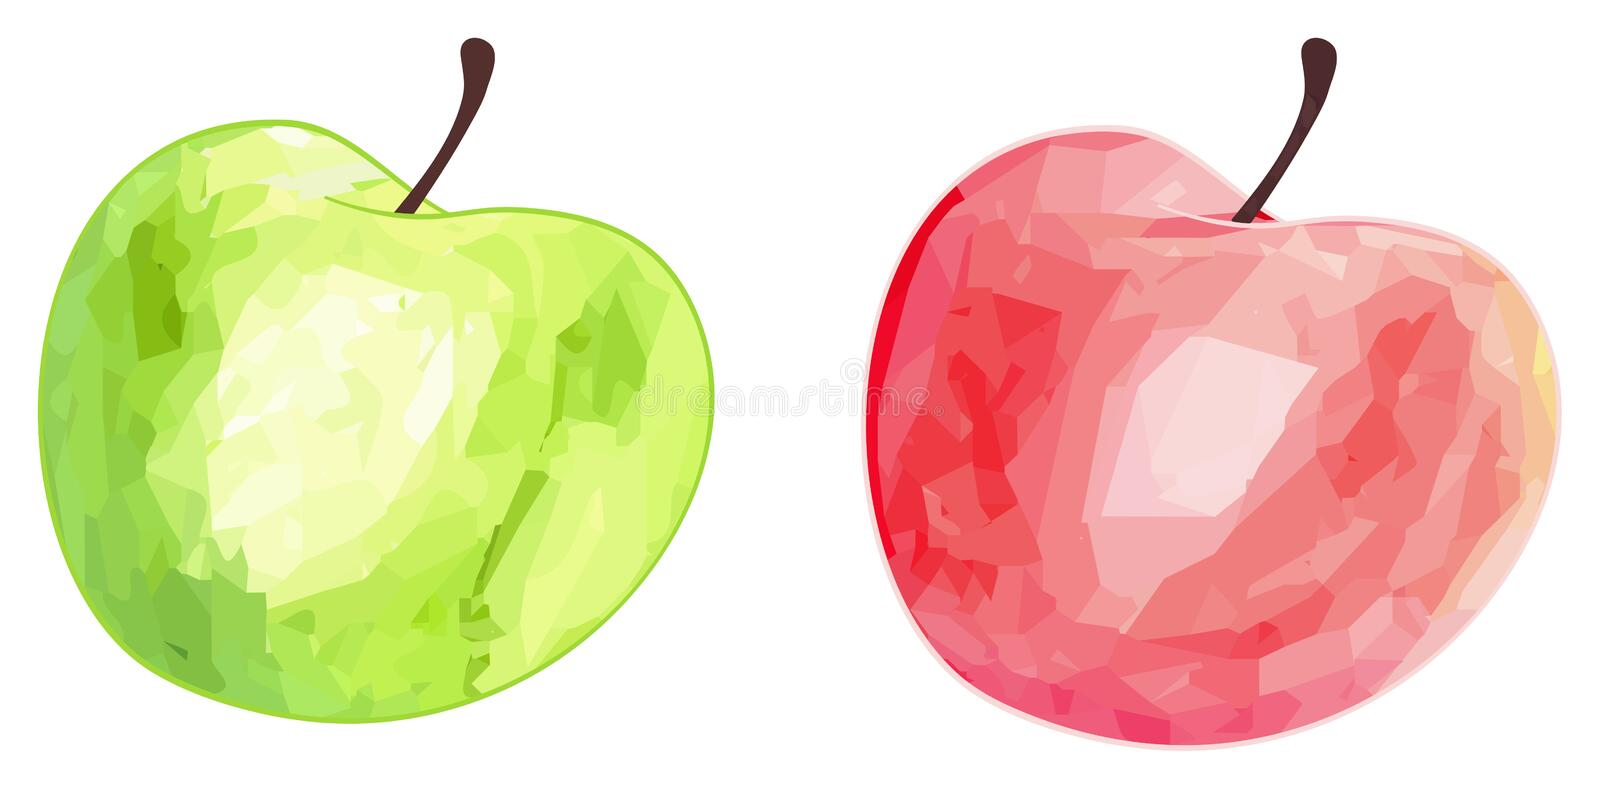 green and red apples clipart. download delightful garden - green and red apples with polygonal pattern stock illustration image: clipart